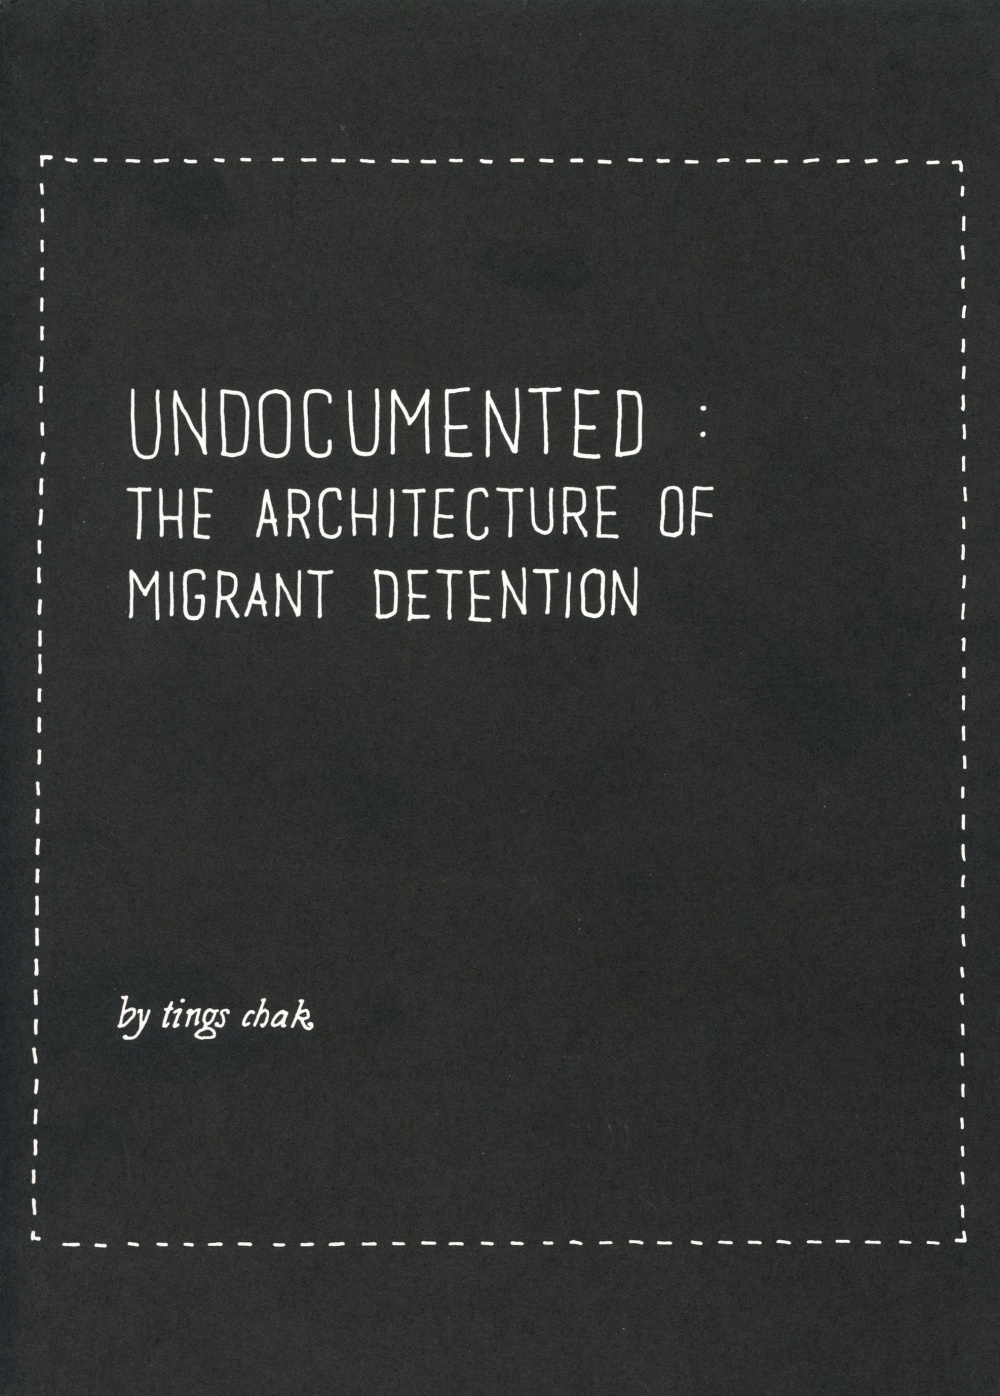 Undocumented: The Architecture of Migrant Detention